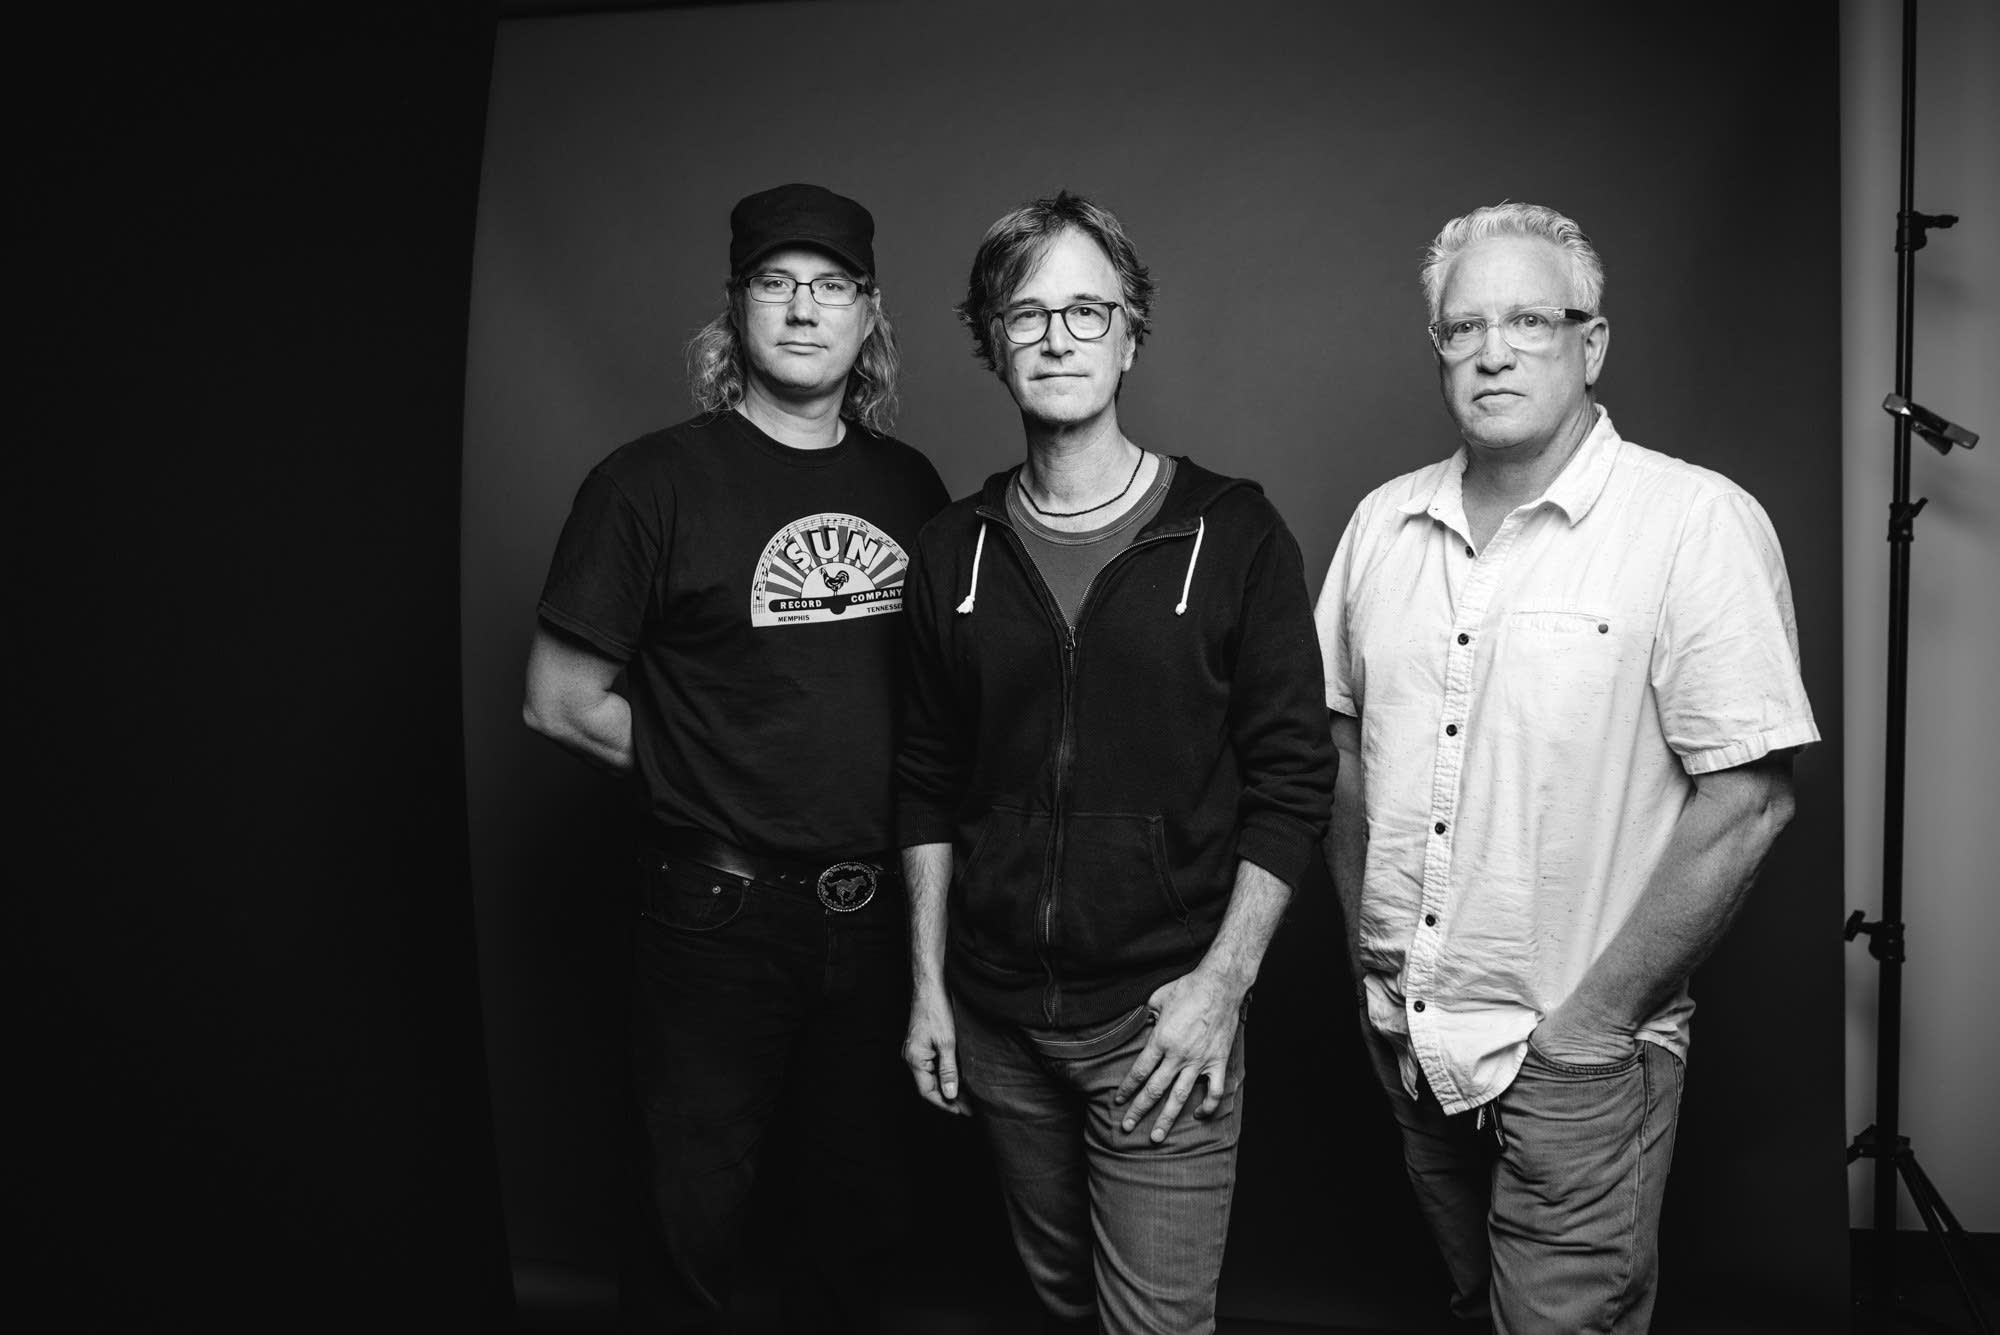 Brad Gordon, Dan Wilson and Ken Chastain portrait